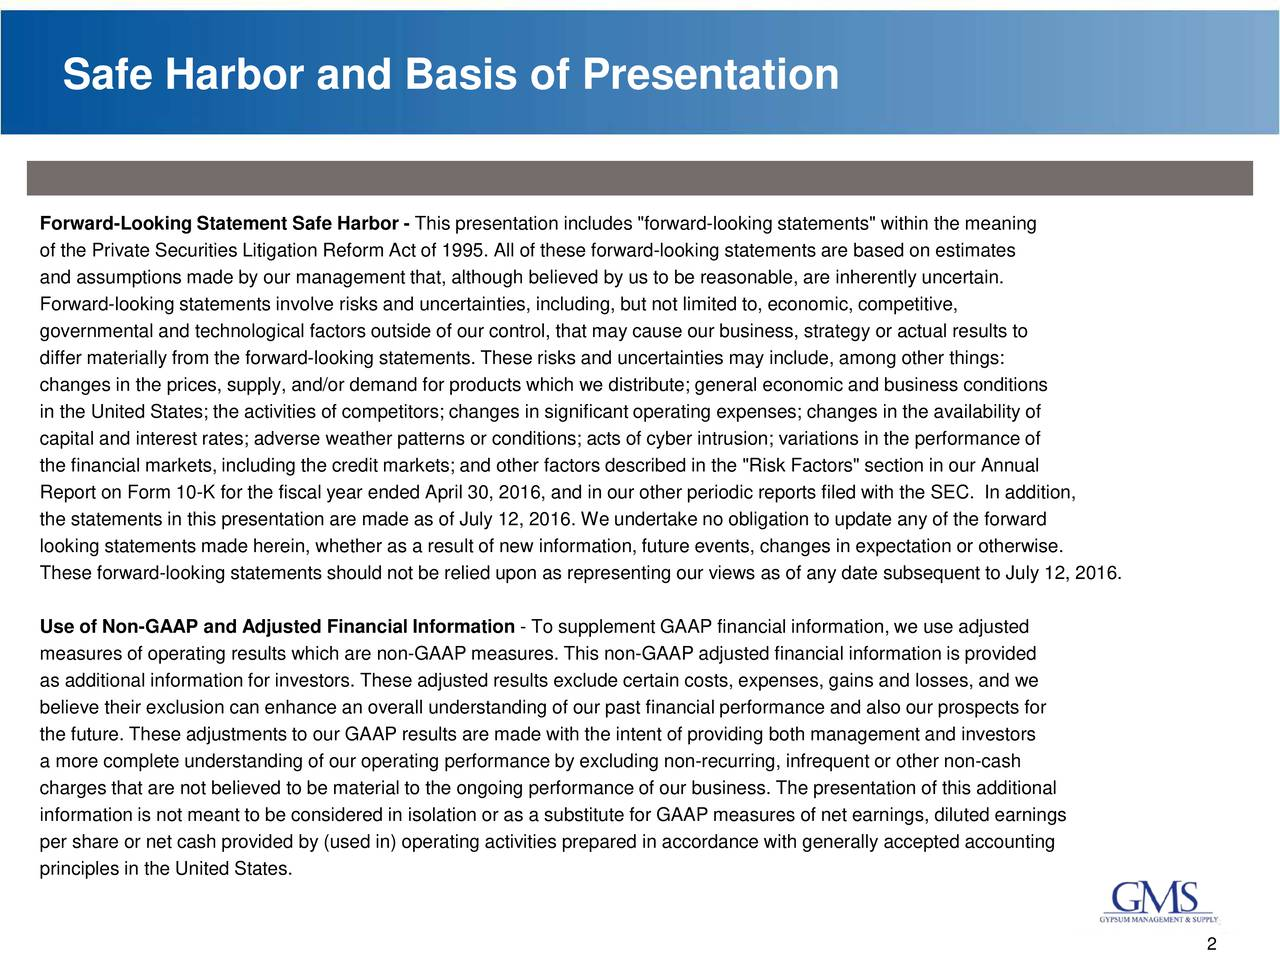 """Forward-Looking Statement Safe Harbor- This presentation includes """"forward-looking statements"""" within the meaning of the Private Securities Litigation Reform Act of 1995. All of these forward-looking statements are based on estimates and assumptions made by our management that, although believed by us to be reasonable, are inherently uncertain. Forward-looking statements involve risks and uncertainties, including, but not limited to, economic, competitive, governmental and technological factors outside of our control, that may cause our business, strategy or actual results to differ materially from the forward-looking statements. These risks and uncertainties may include, among other things: changes in the prices, supply, and/or demand for products which we distribute; general economic and business conditions in the United States; the activities of competitors; changes in significant operating expenses; changes in the availability of capital and interest rates; adverse weather patterns or conditions; acts of cyber intrusion; variations in the performance of the financial markets, including the credit markets; and other factors described in the """"Risk Factors"""" section in our Annual Report on Form 10-K for the fiscal year ended April 30, 2016, and in our other periodic reports filed with the SEC. In addition, the statements in this presentation are made as of July 12, 2016. We undertake no obligation to update any of the forward looking statements made herein, whether as a result of new information, future events, changes in expectation or otherwise. These forward-looking statements should not be relied upon as representing our views as of any date subsequent to July 12, 2016. Use of Non-GAAP and Adjusted Financial Information -To supplement GAAP financial information, we use adjusted measures of operating results which are non-GAAP measures. This non-GAAP adjusted financial information is provided as additional information for investors. These adjusted results exclude"""